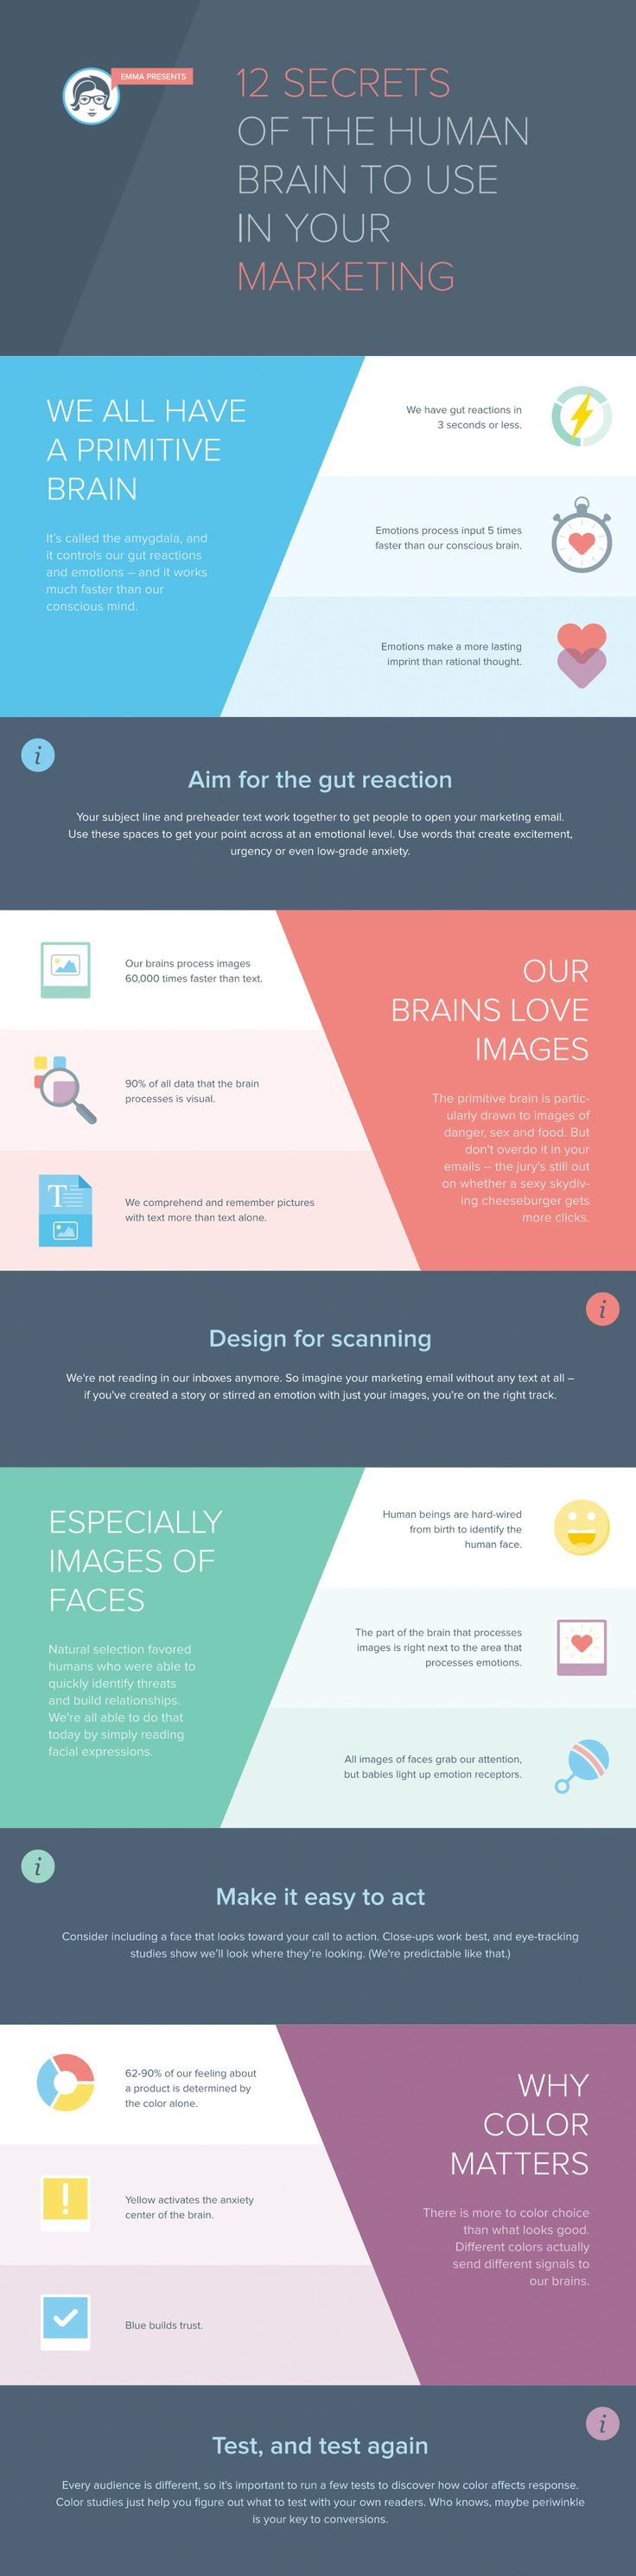 12 Secrets of the Human Brain To Use In Your #Marketing